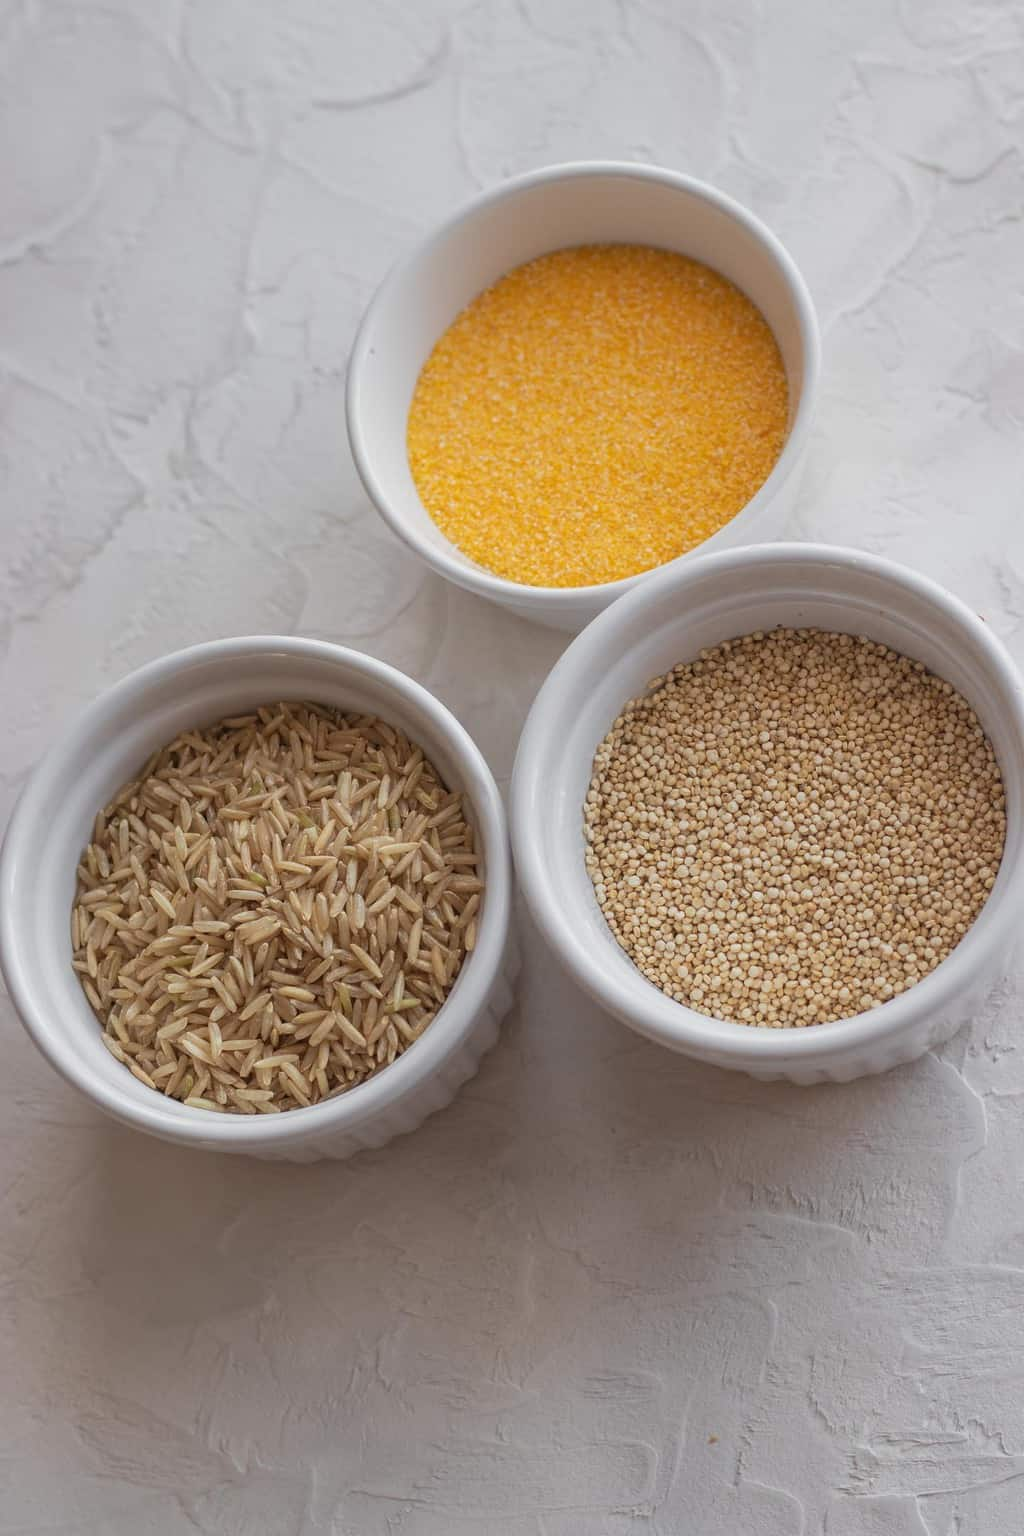 Grains vegan pantry staples